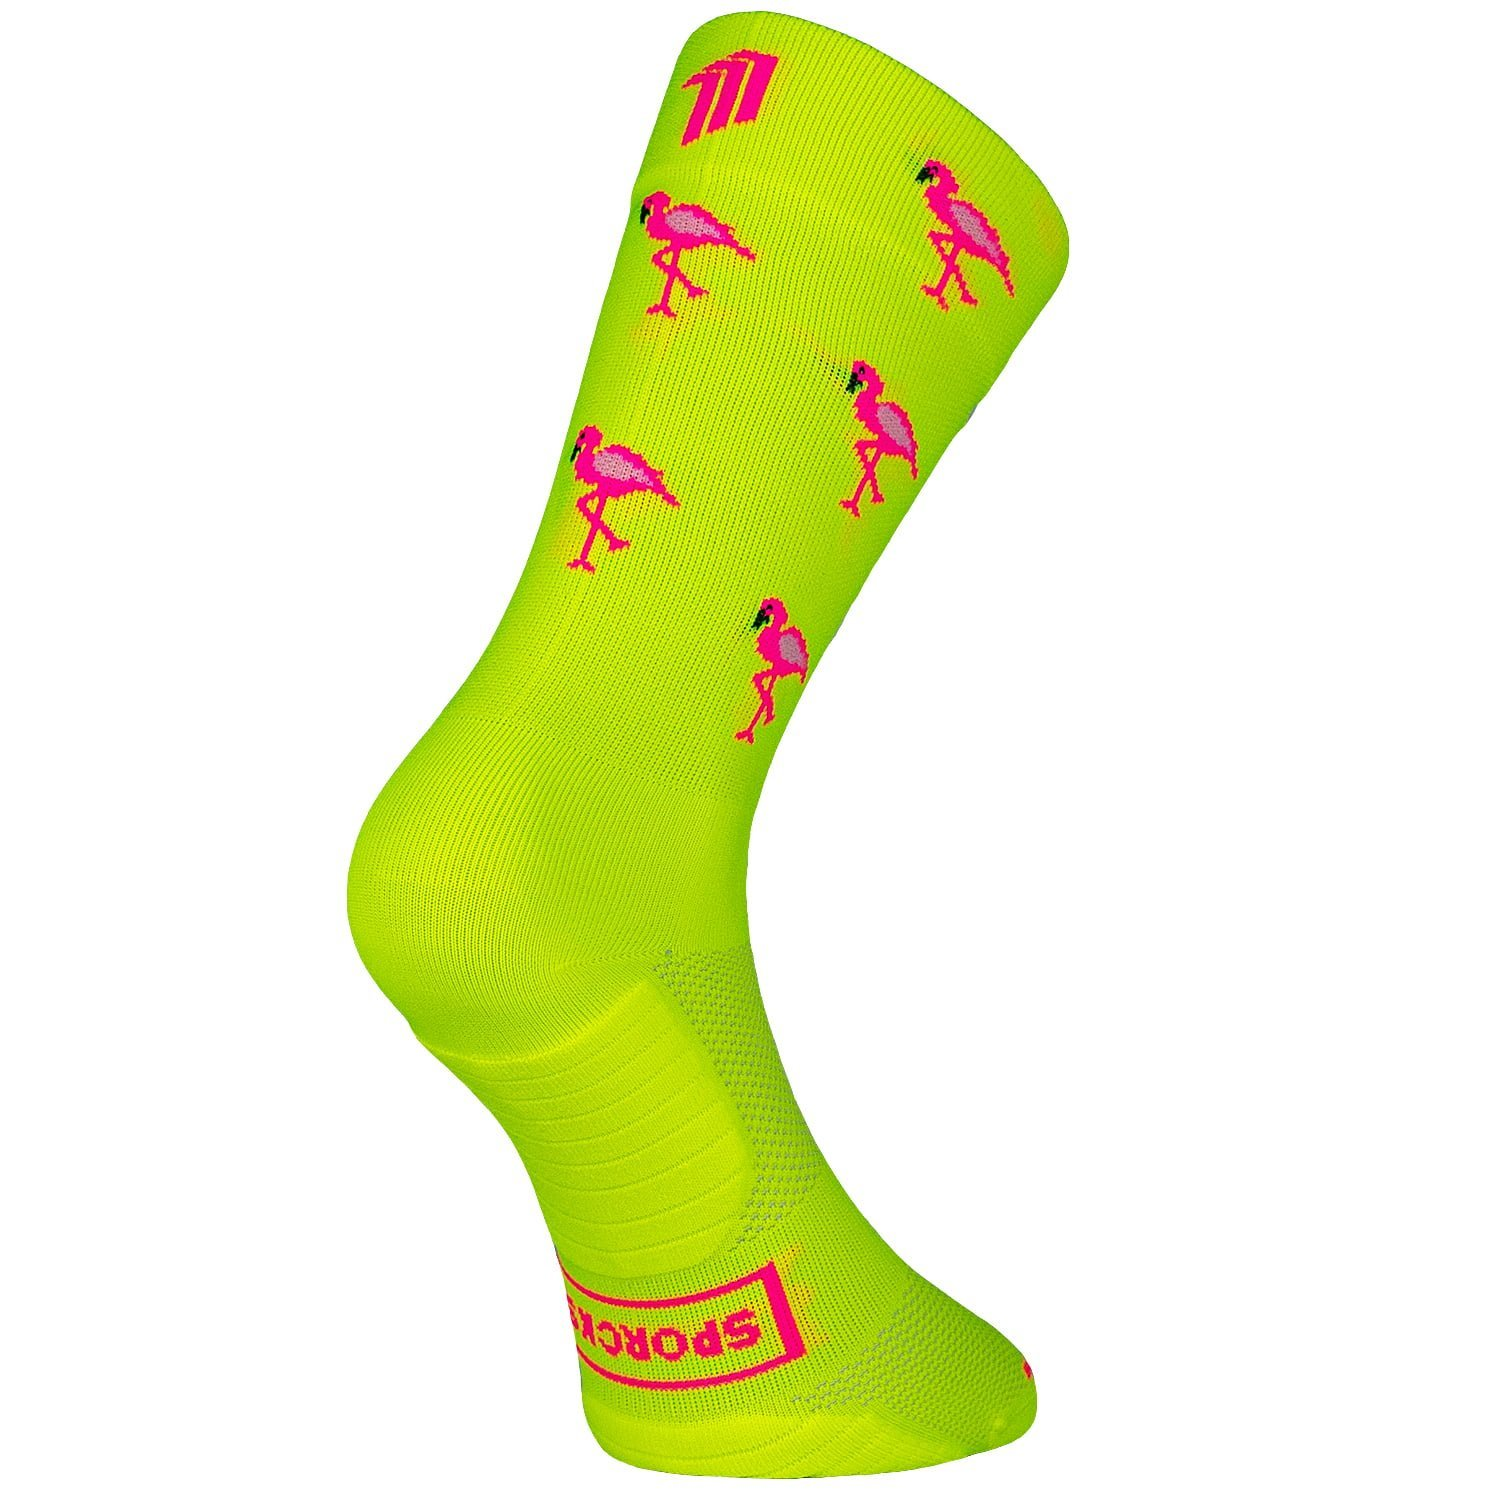 Flamingo Yellow II - Cycling sock